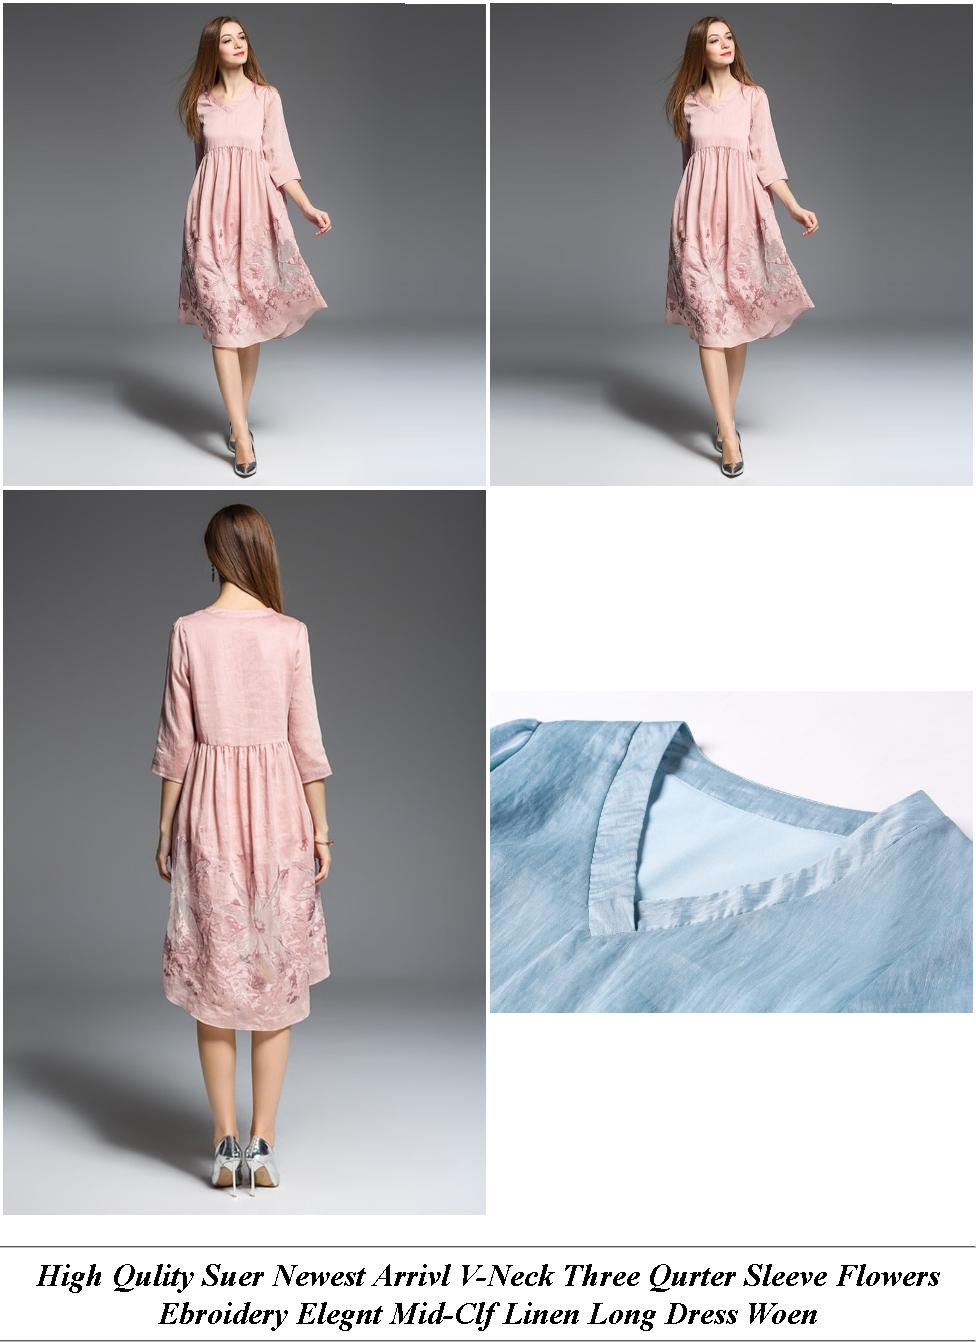 Summer Dresses Uk Cheap - Easter Sale Usa - Royal Lue And White Wedding Gowns